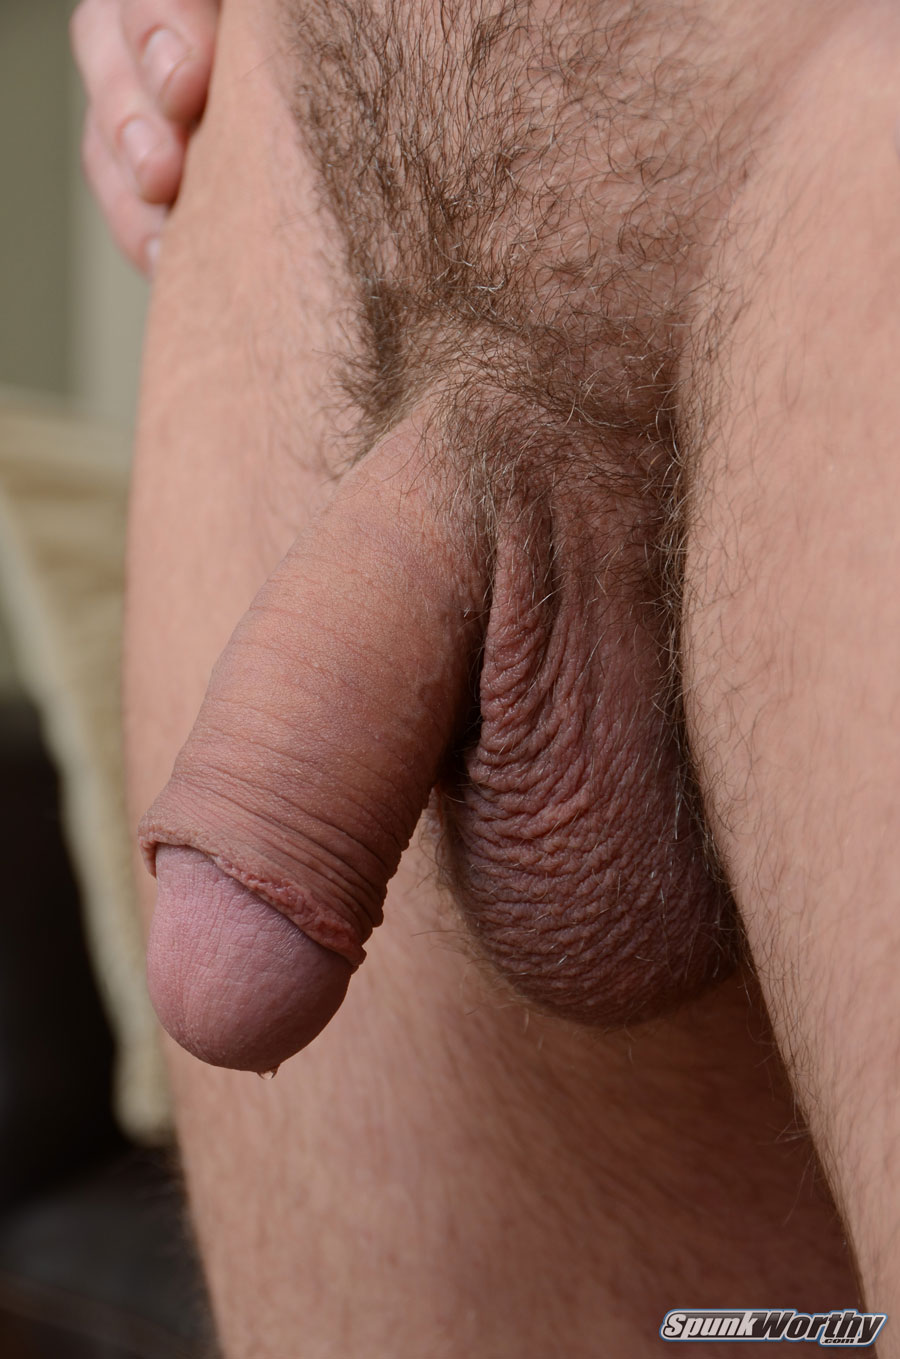 SpunkWorthy Eli Straight Marine With Big Uncut Cock Masturbating Jerking Off 05 Real Straight Marine With Huge Uncut Cock Shoots His Cum Load